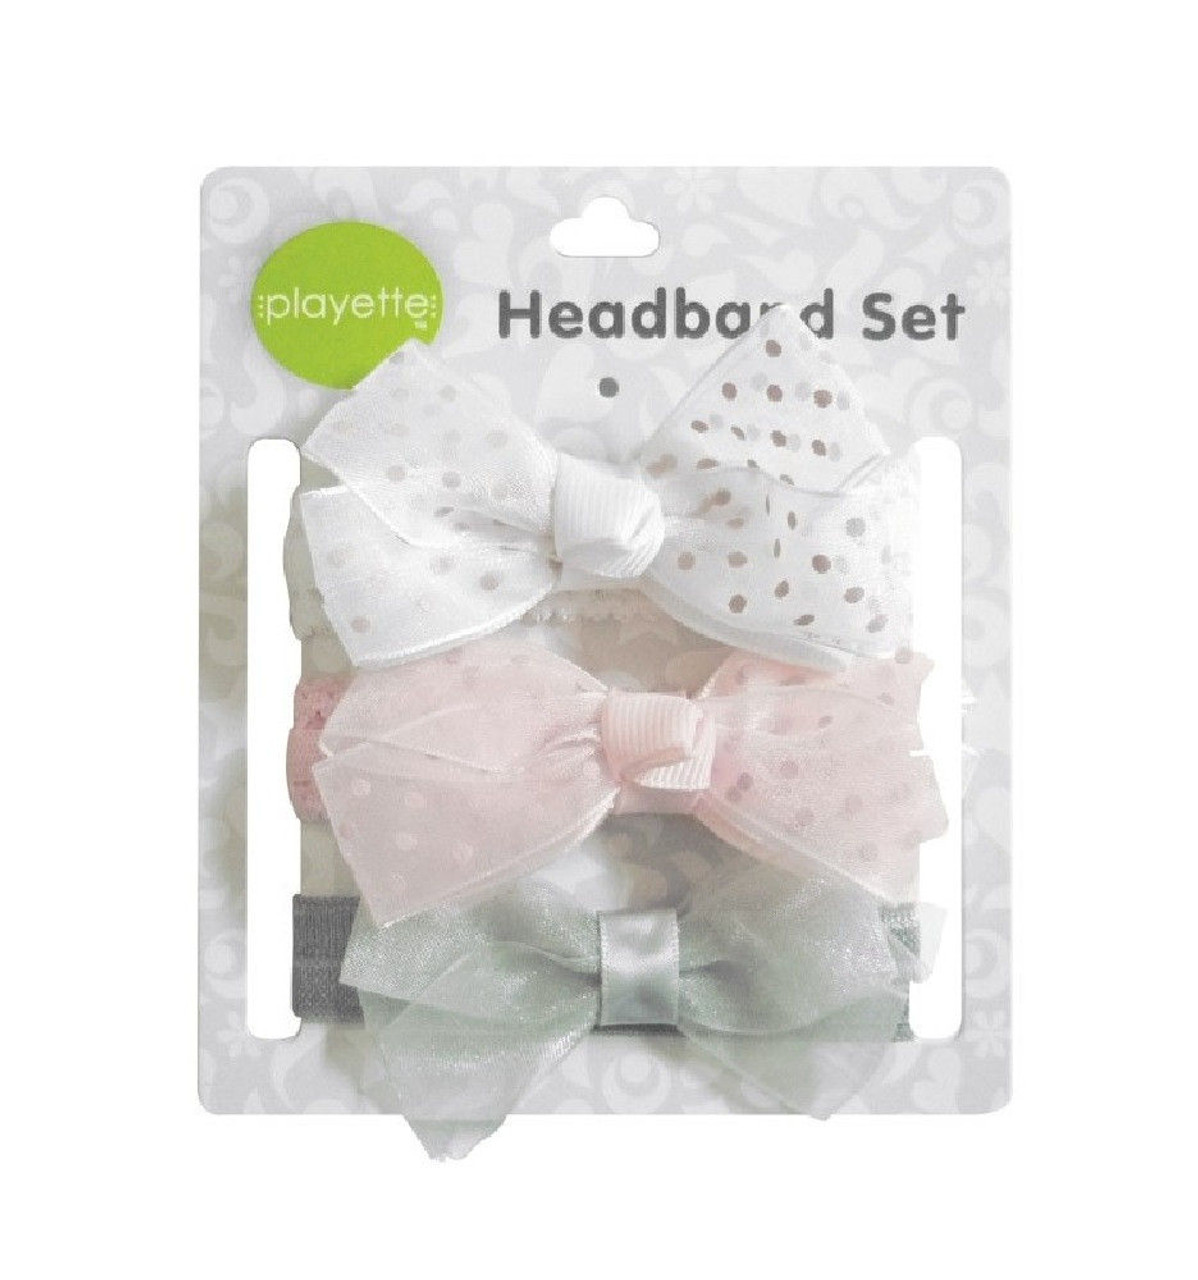 Playette Chiffon Headband 3pk at Baby Barn Discounts This set of three lovely headbands by Playette is sure to add a cute touch to any outfit. Made with lightweight chiffon.